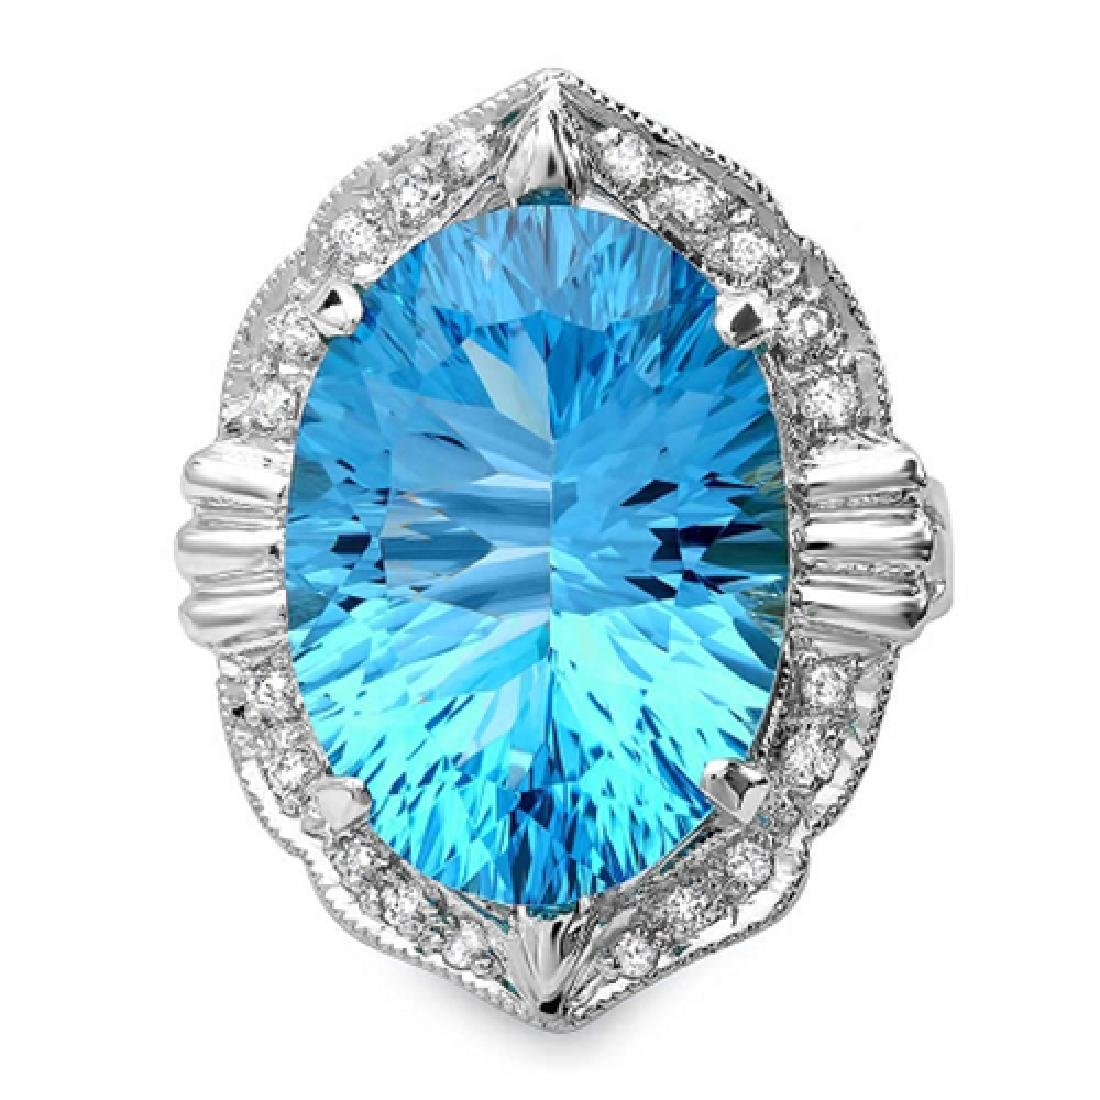 13.60 Carat Natural Topaz 18K Solid White Gold Diamond